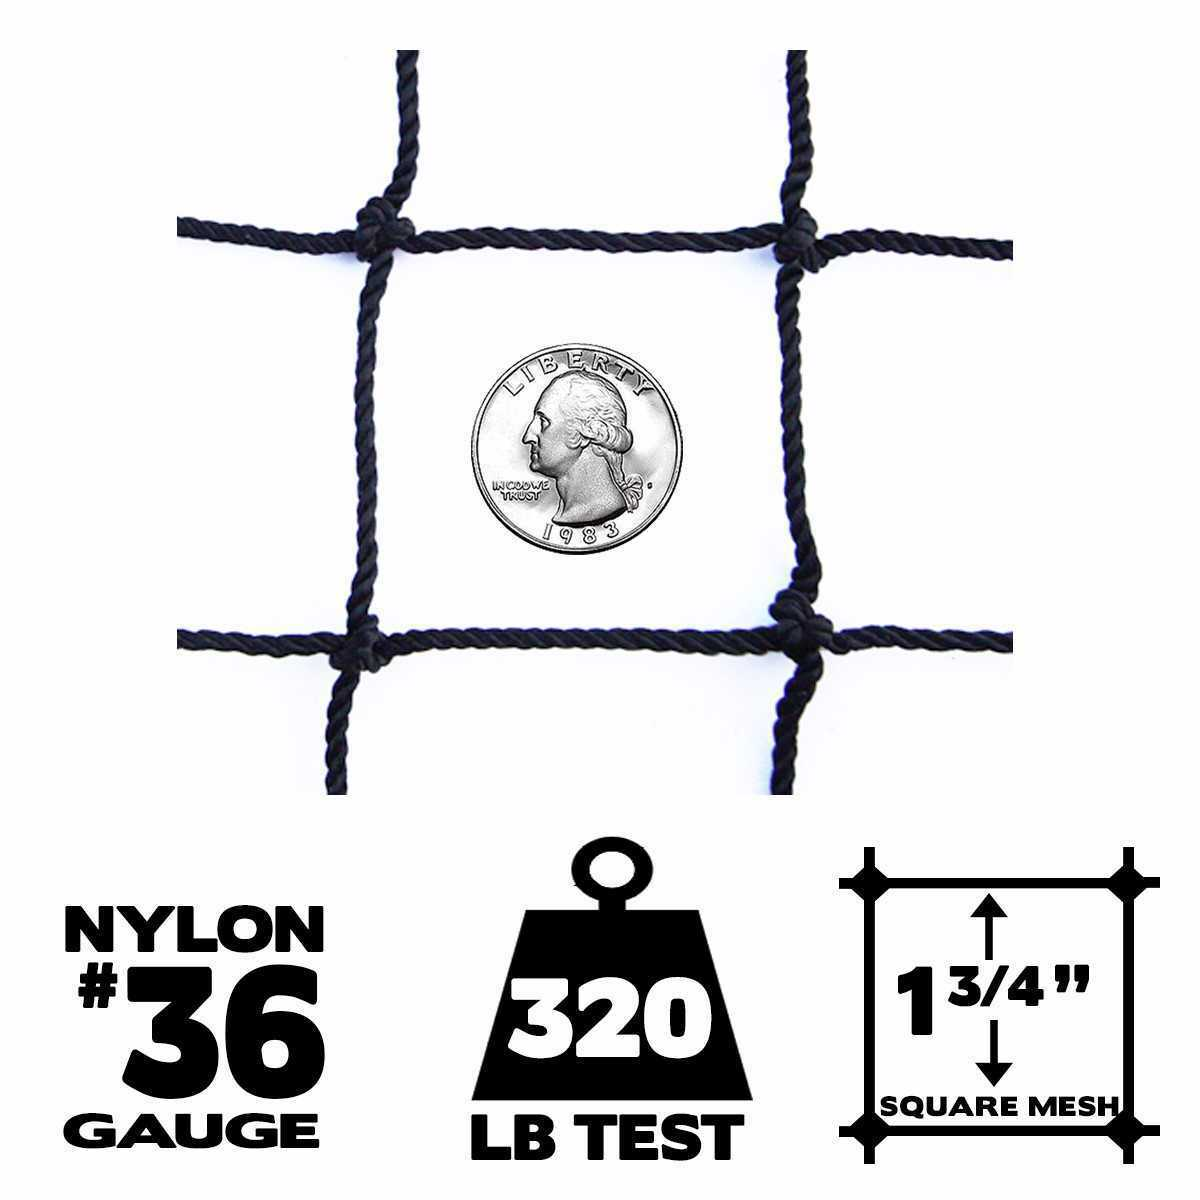 Netting x - 15' x Netting 30',  36 Gauge, Baseball / Softball Panel Net (Choose Border) 477948